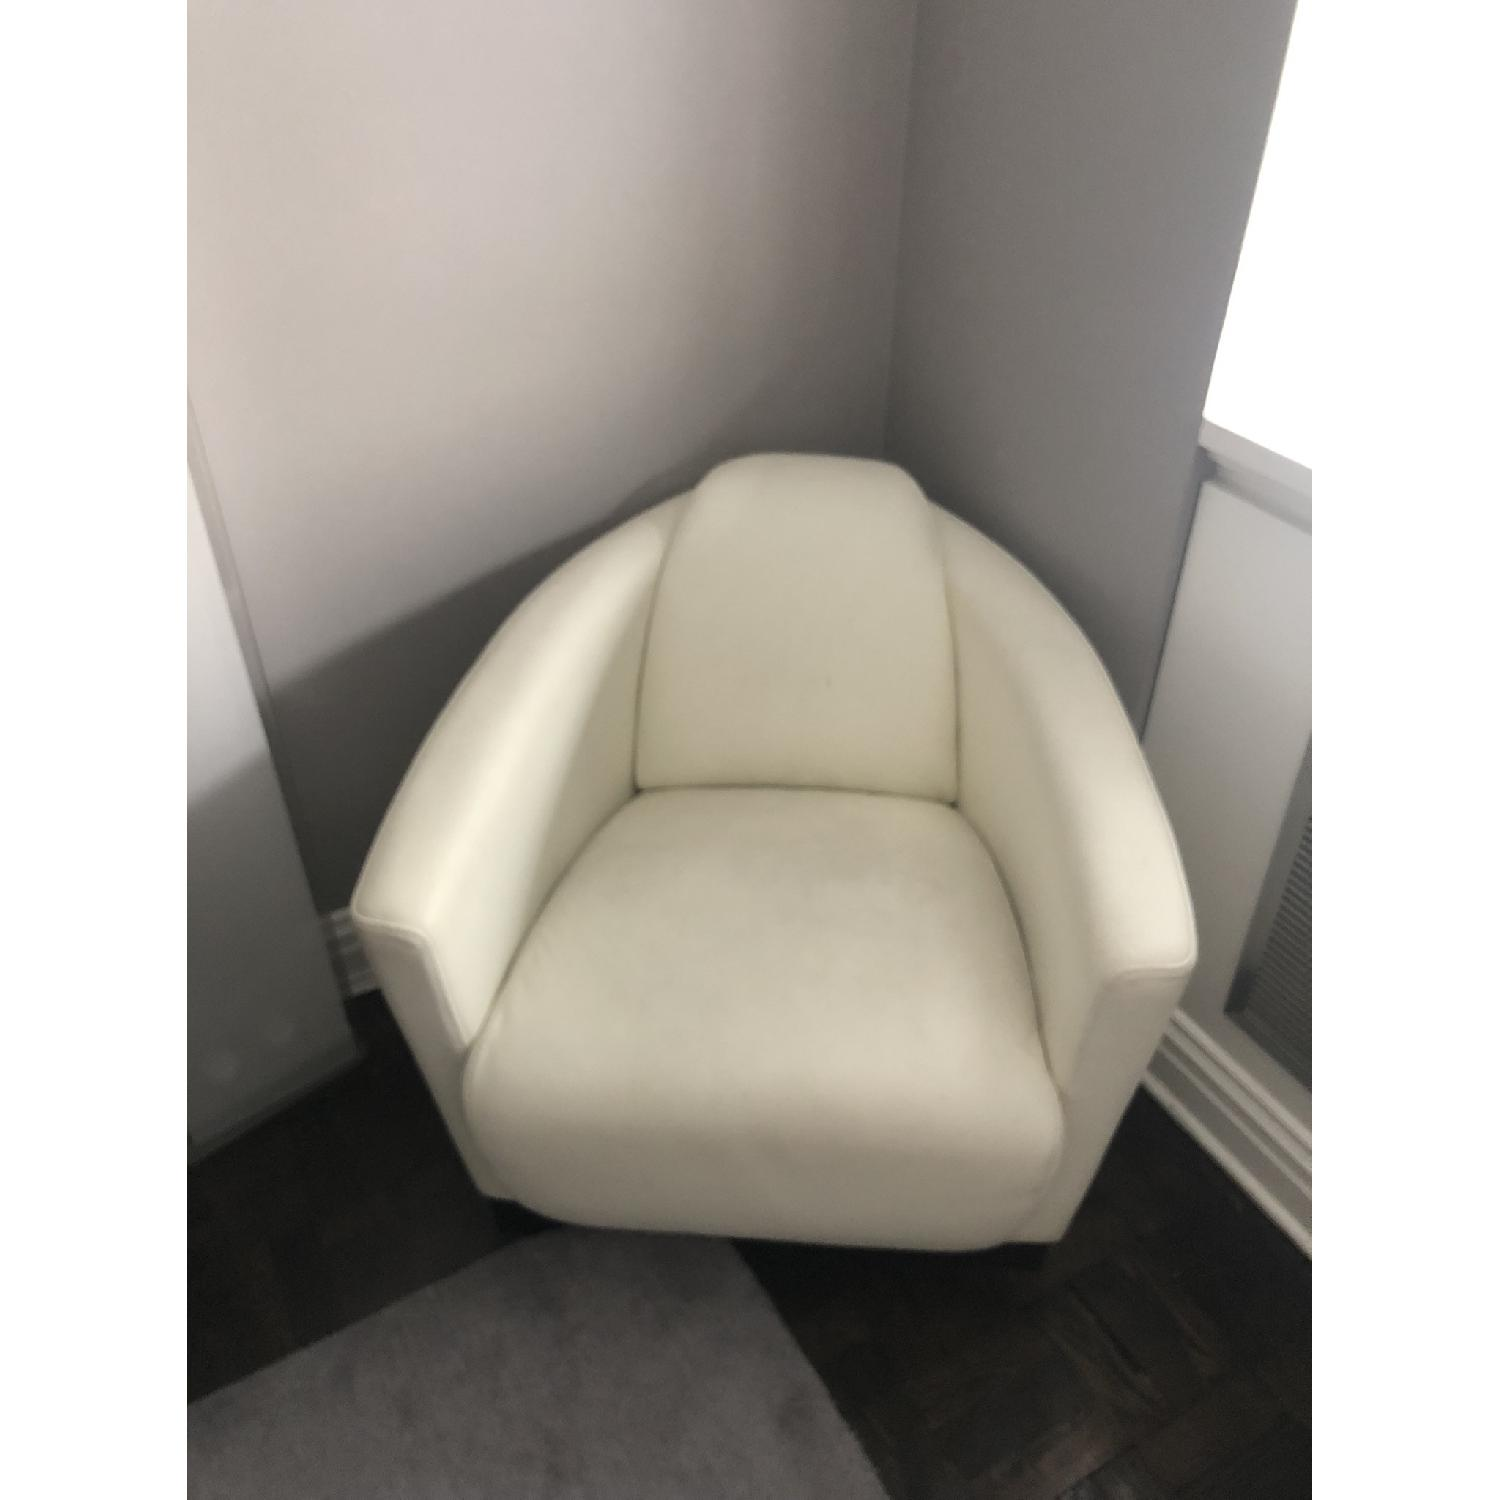 Nicoletti Hollister White Leather Armchair w/ Wood Base - image-1